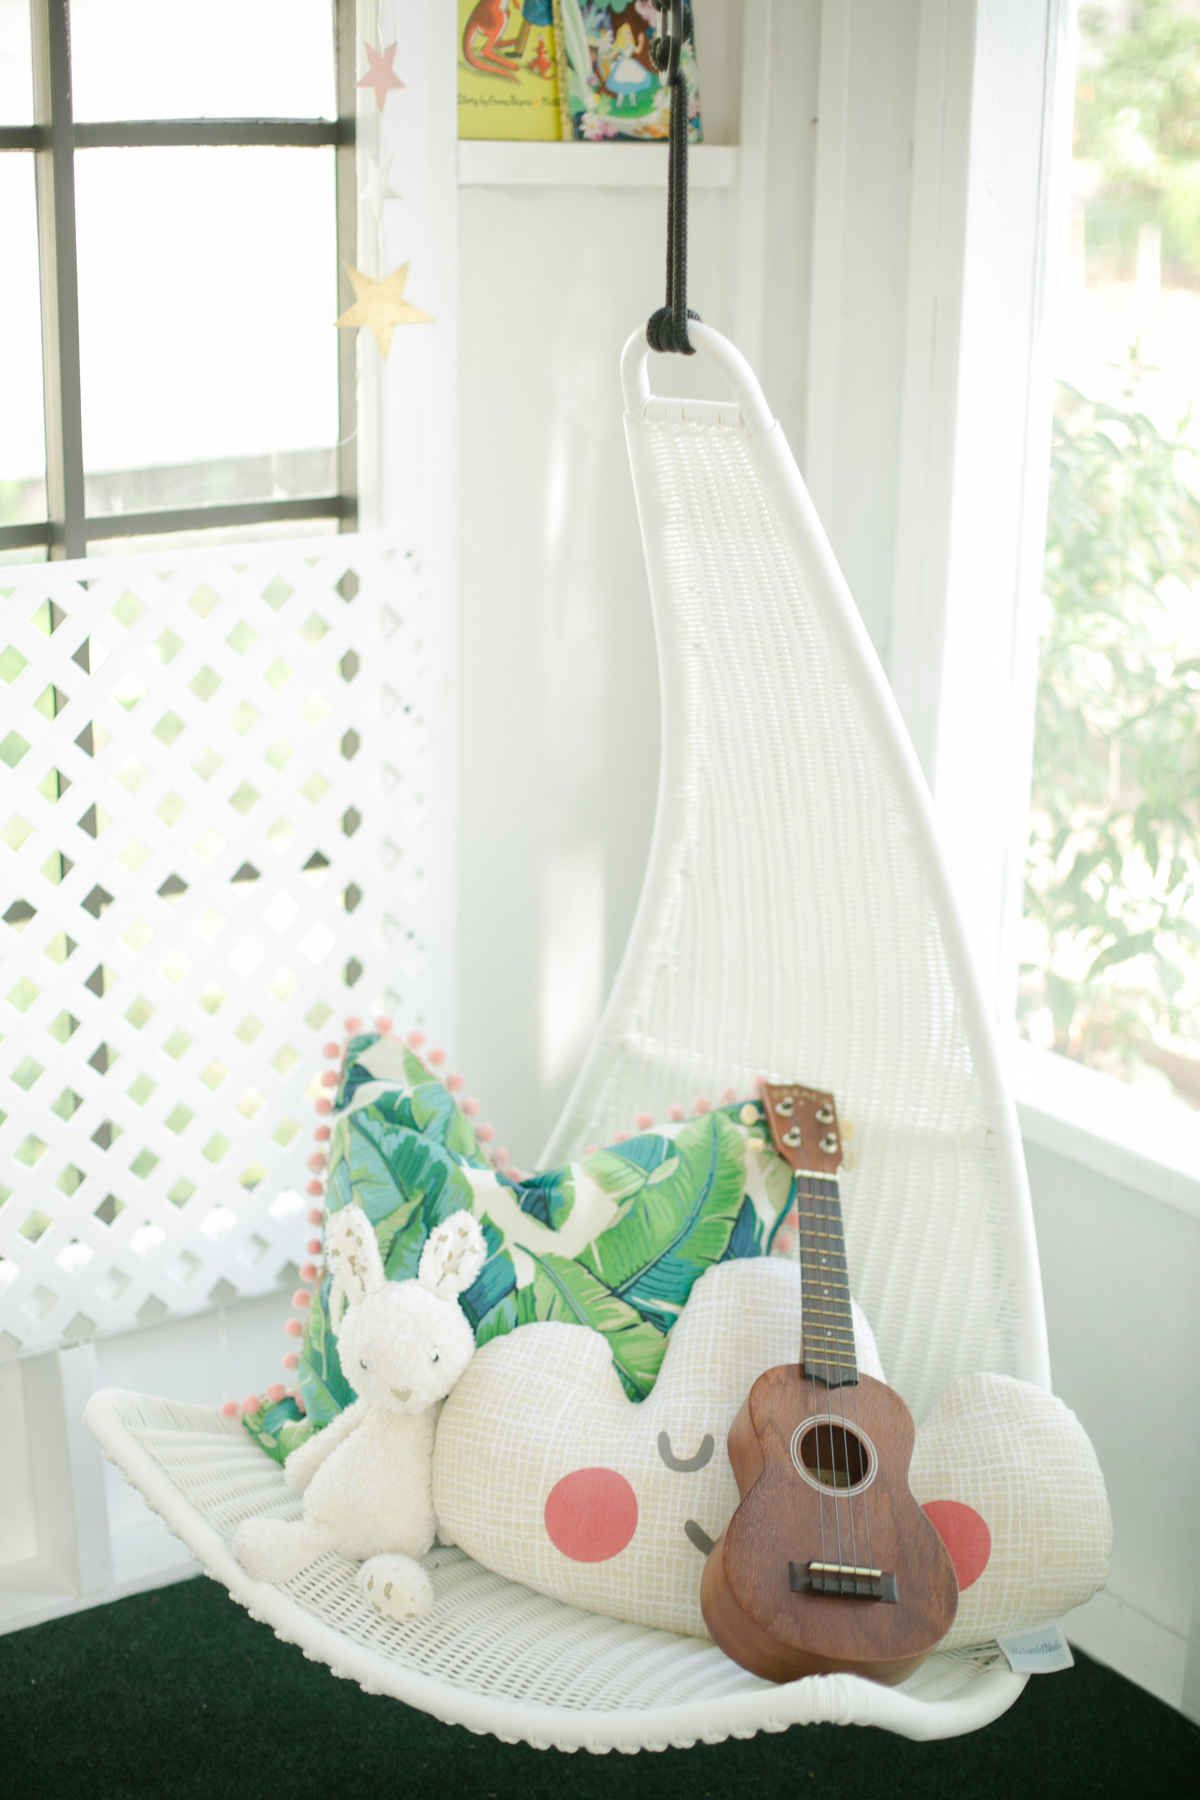 Ikea Reading Chair Craigslist Office Chairs Playhouse Plans And Inspiration Pinterest Hanging